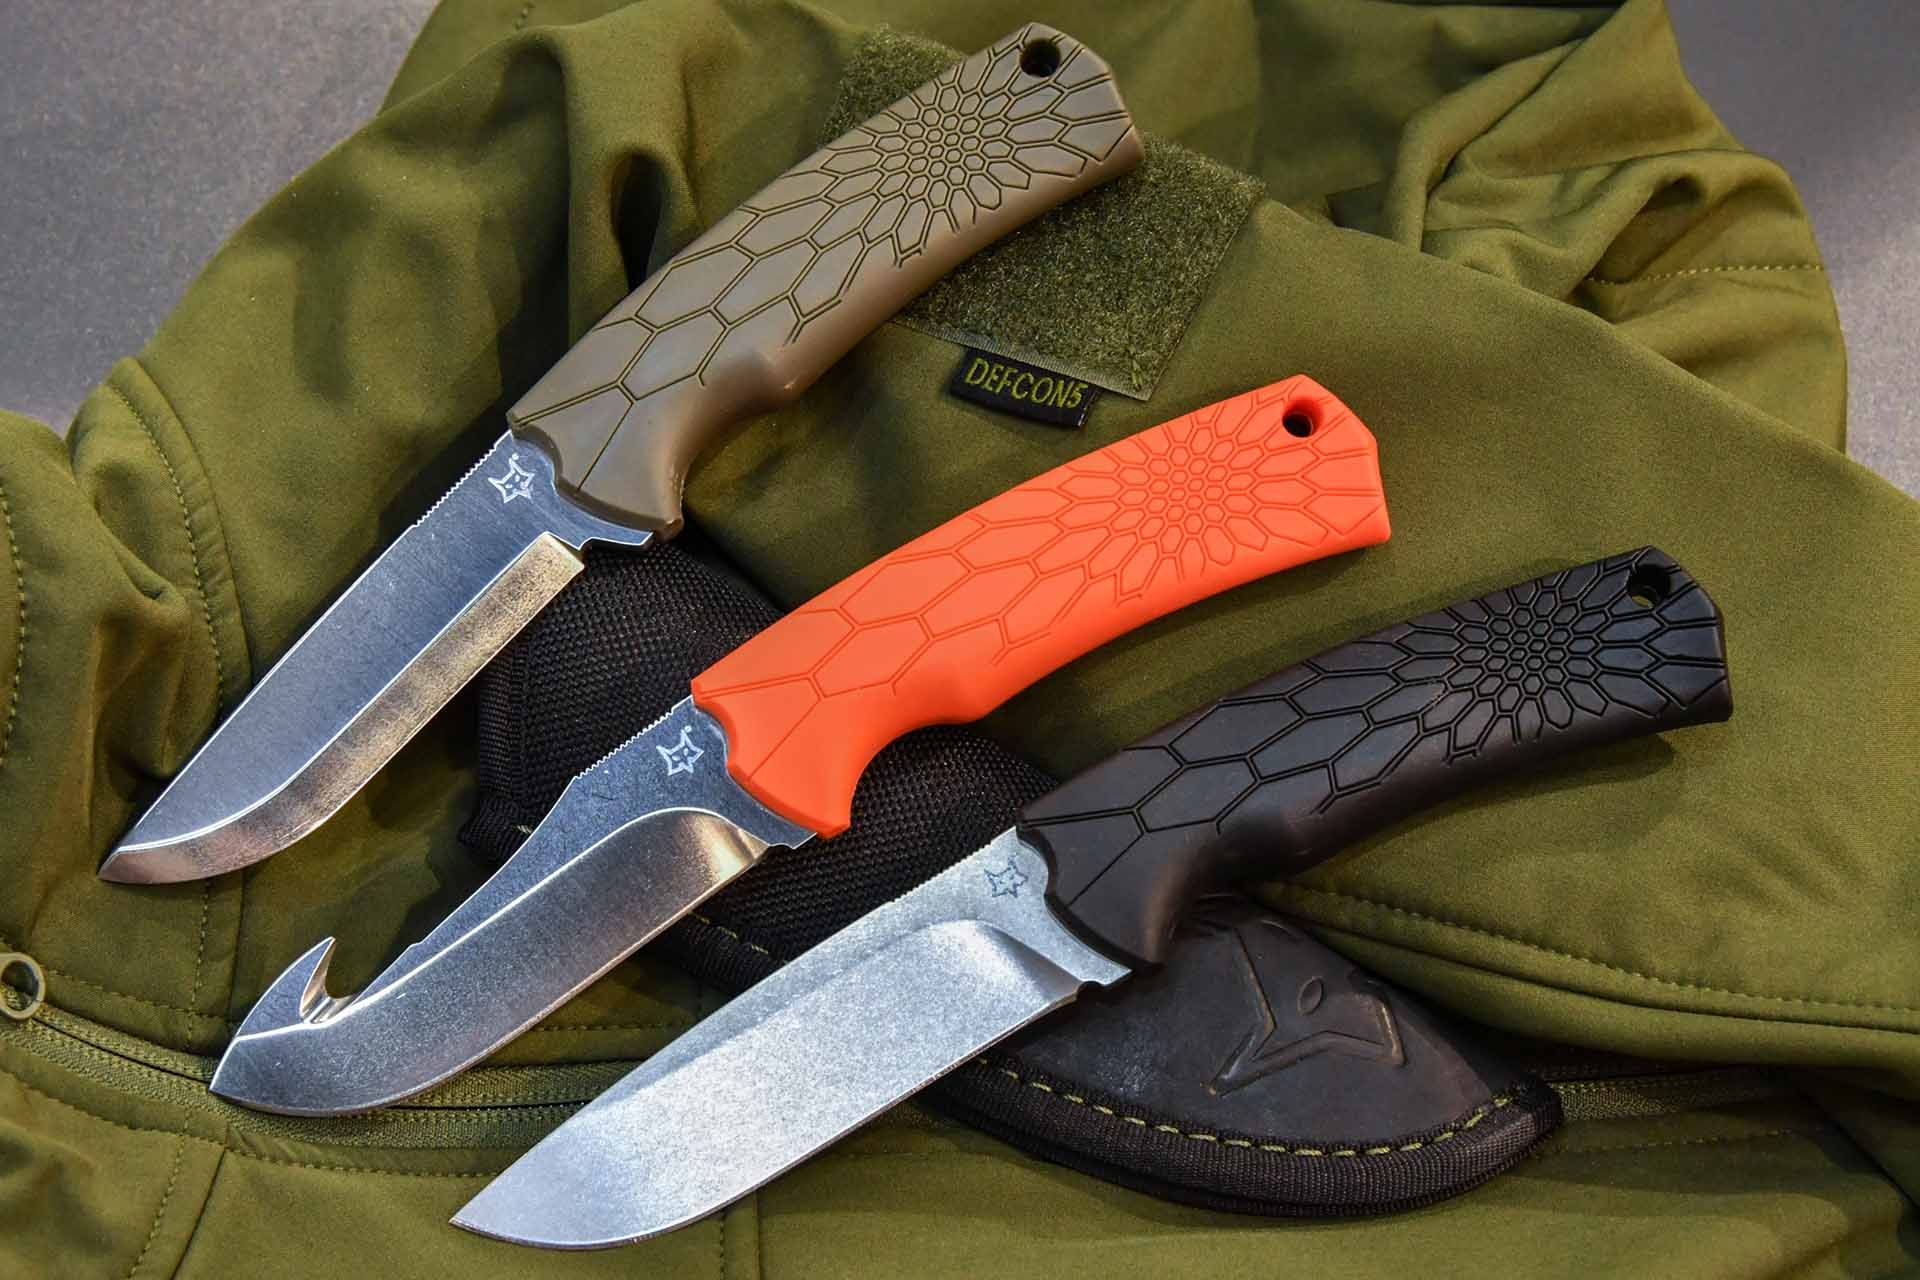 fox-knives: Fox Knives: three aces for hunting